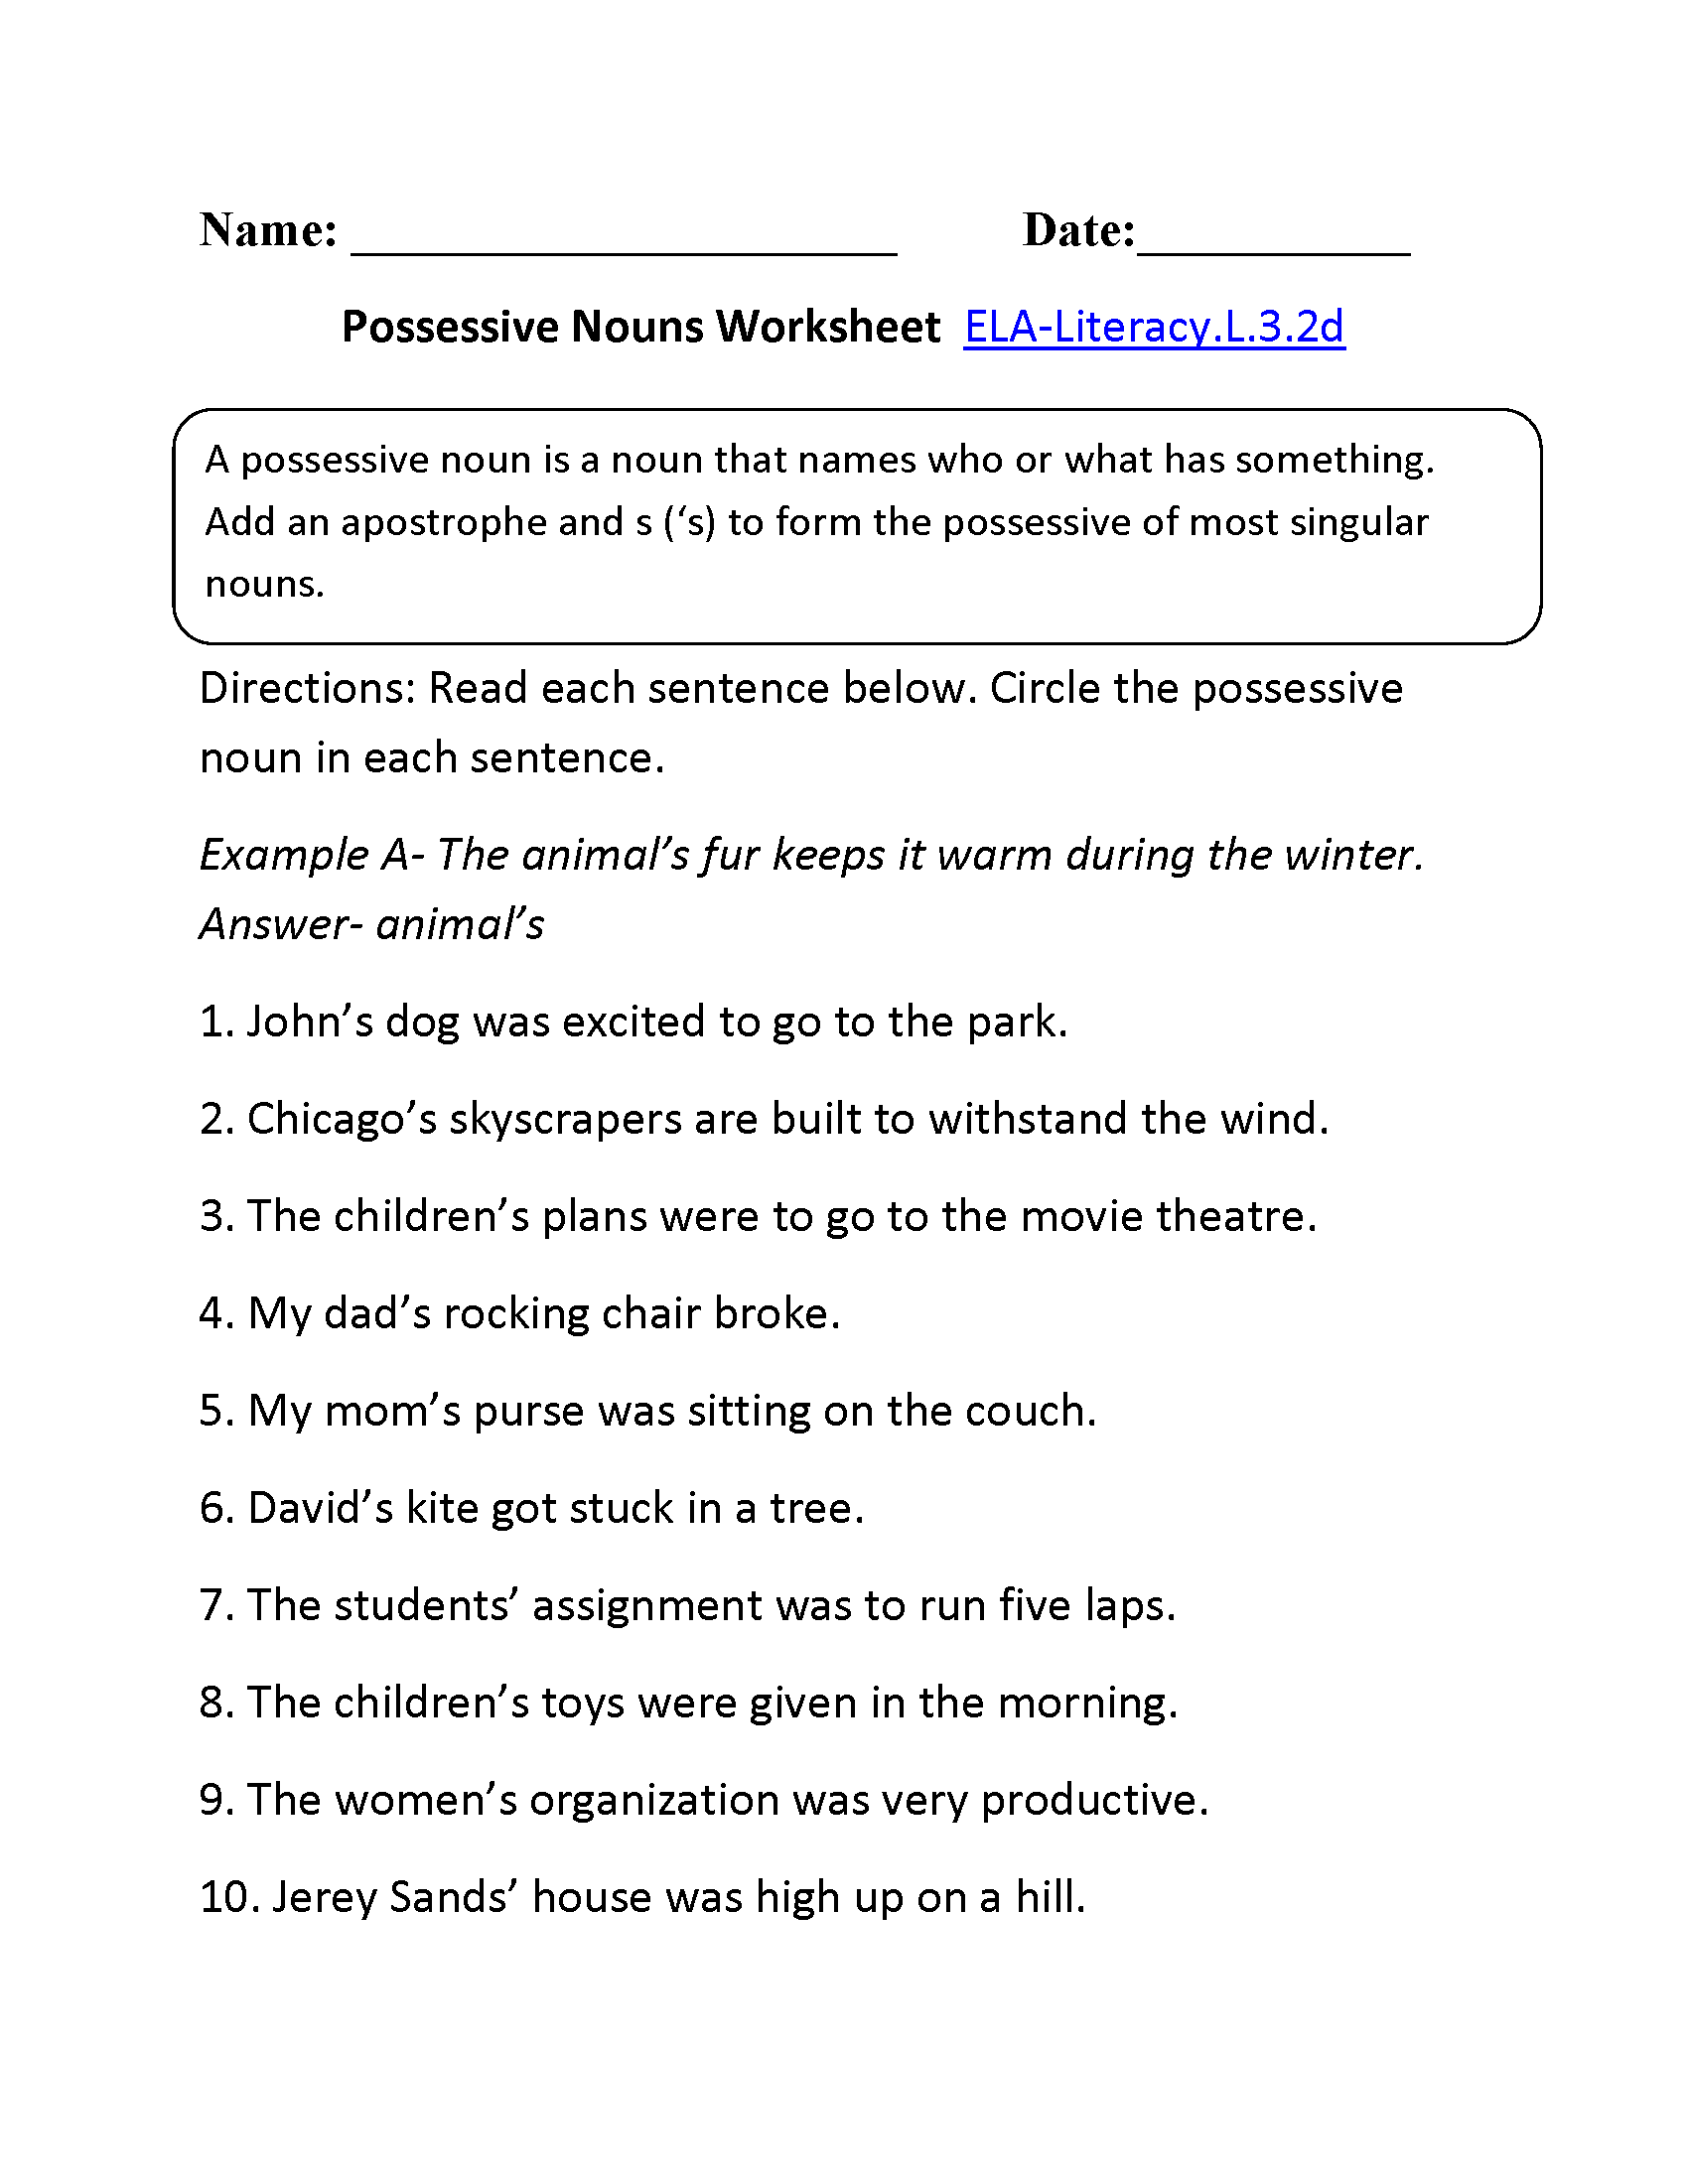 Possessive Nouns Worksheet 1 ELA-Literacy.L.3.2d Language Worksheet